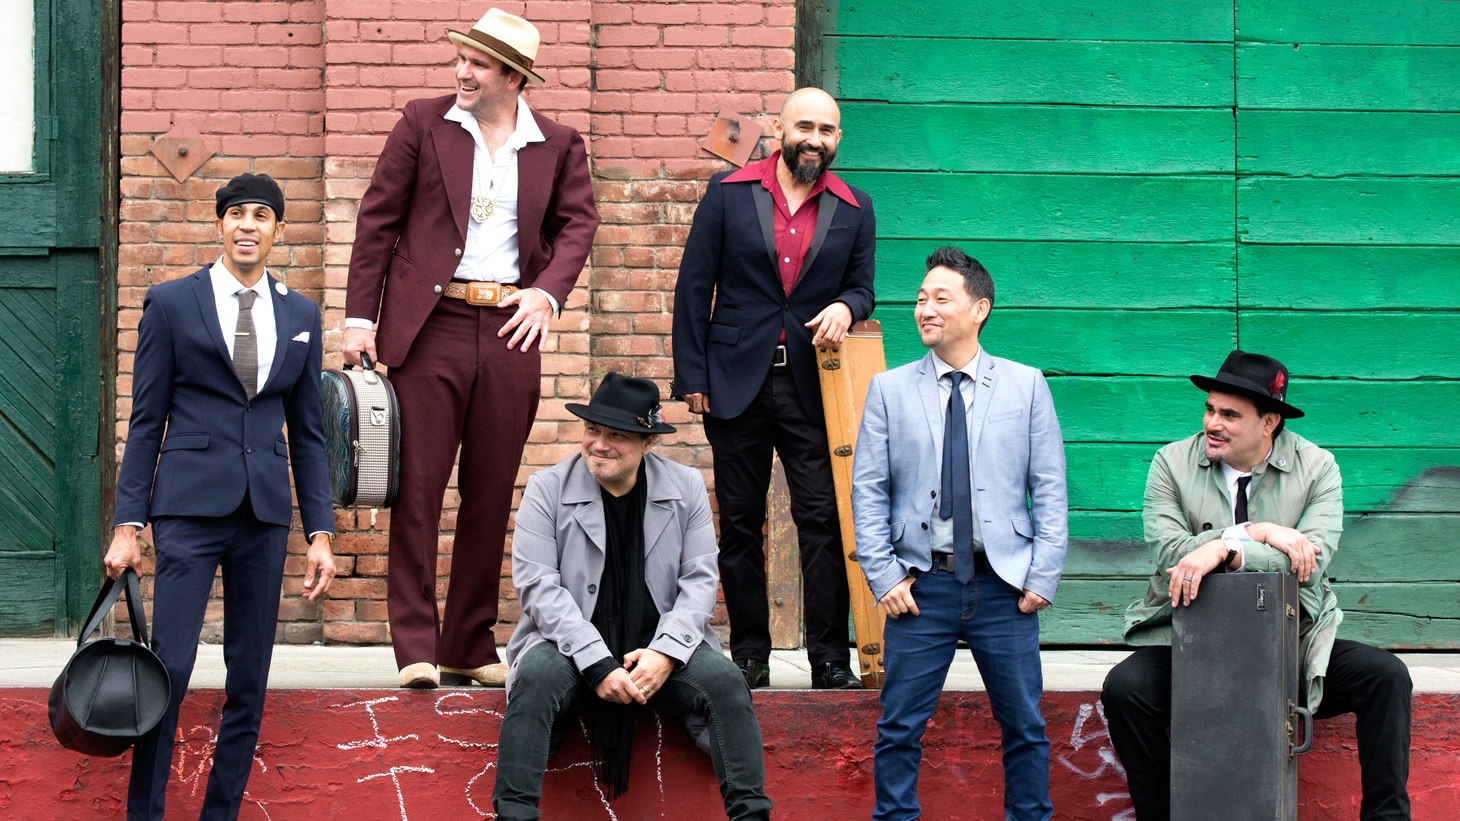 In celebration of their 21st anniversary, Ozomatli teamed up with drum and bass reggae legends Sly & Robbie to re-imagine a collection of hits from the classic songbook of Mexico with a reggae vibe. T